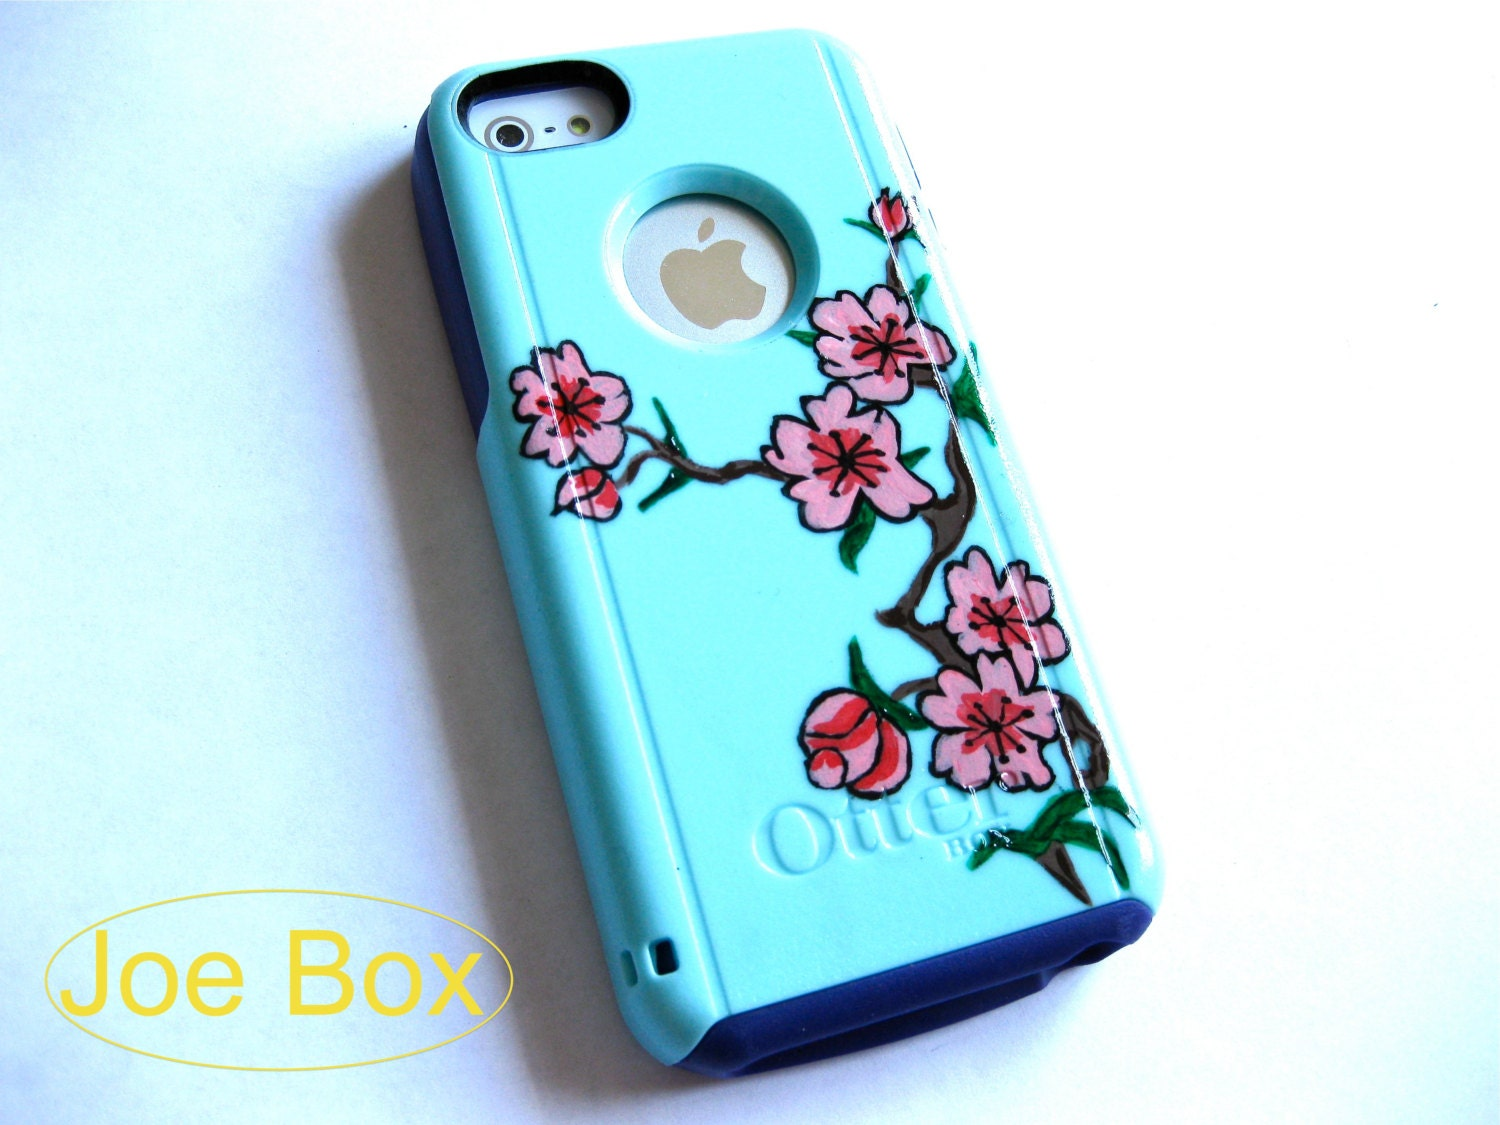 Sale otterbox iphone 5c case case cover iphone 5c otterbox